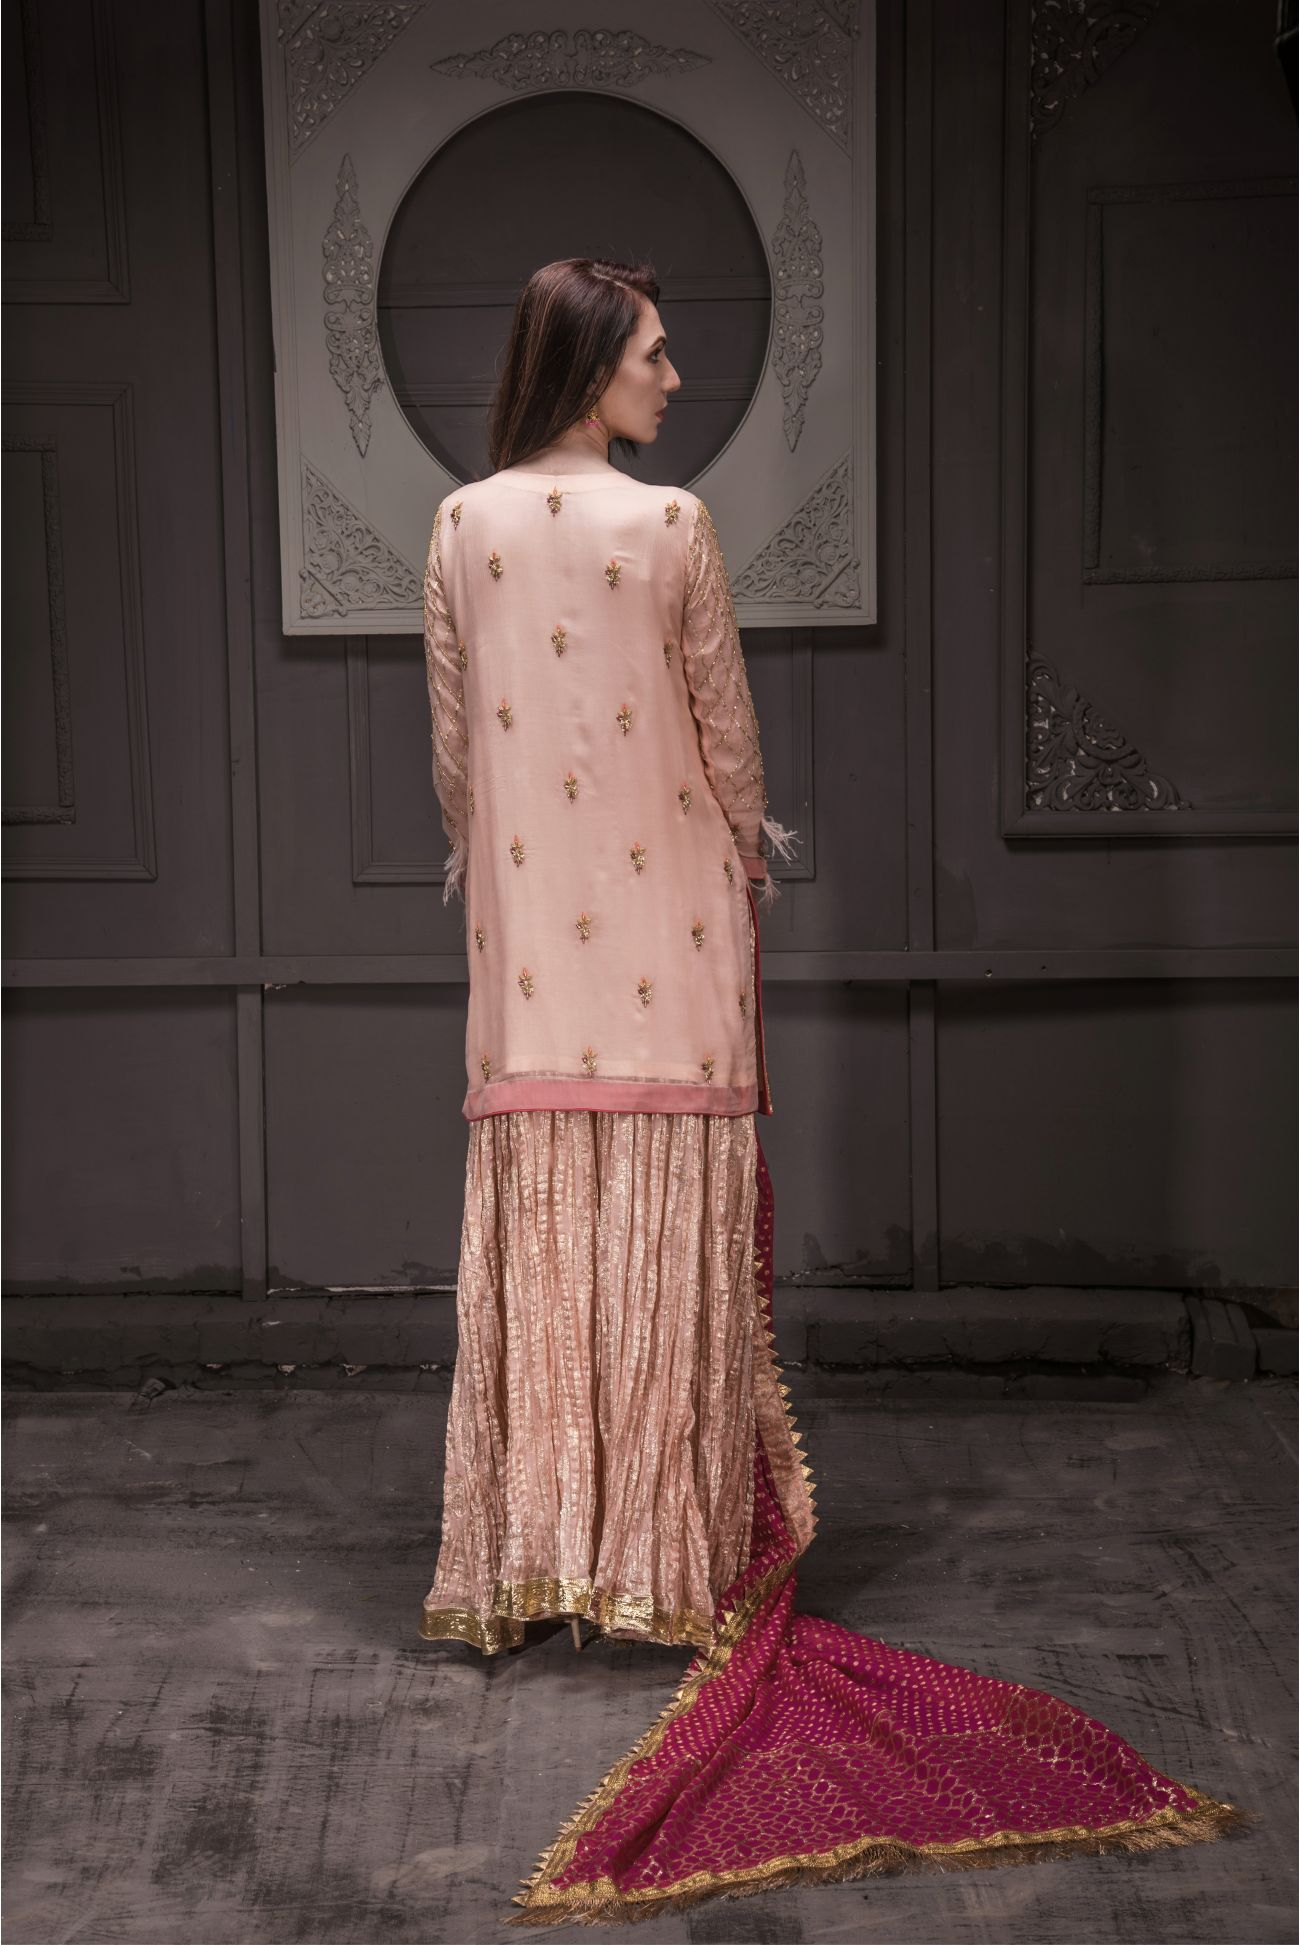 Buy Exclusive Peach And Hot Pink Bridal Wear – Sdbd25 Online In USA, Uk & Pakistan - 03